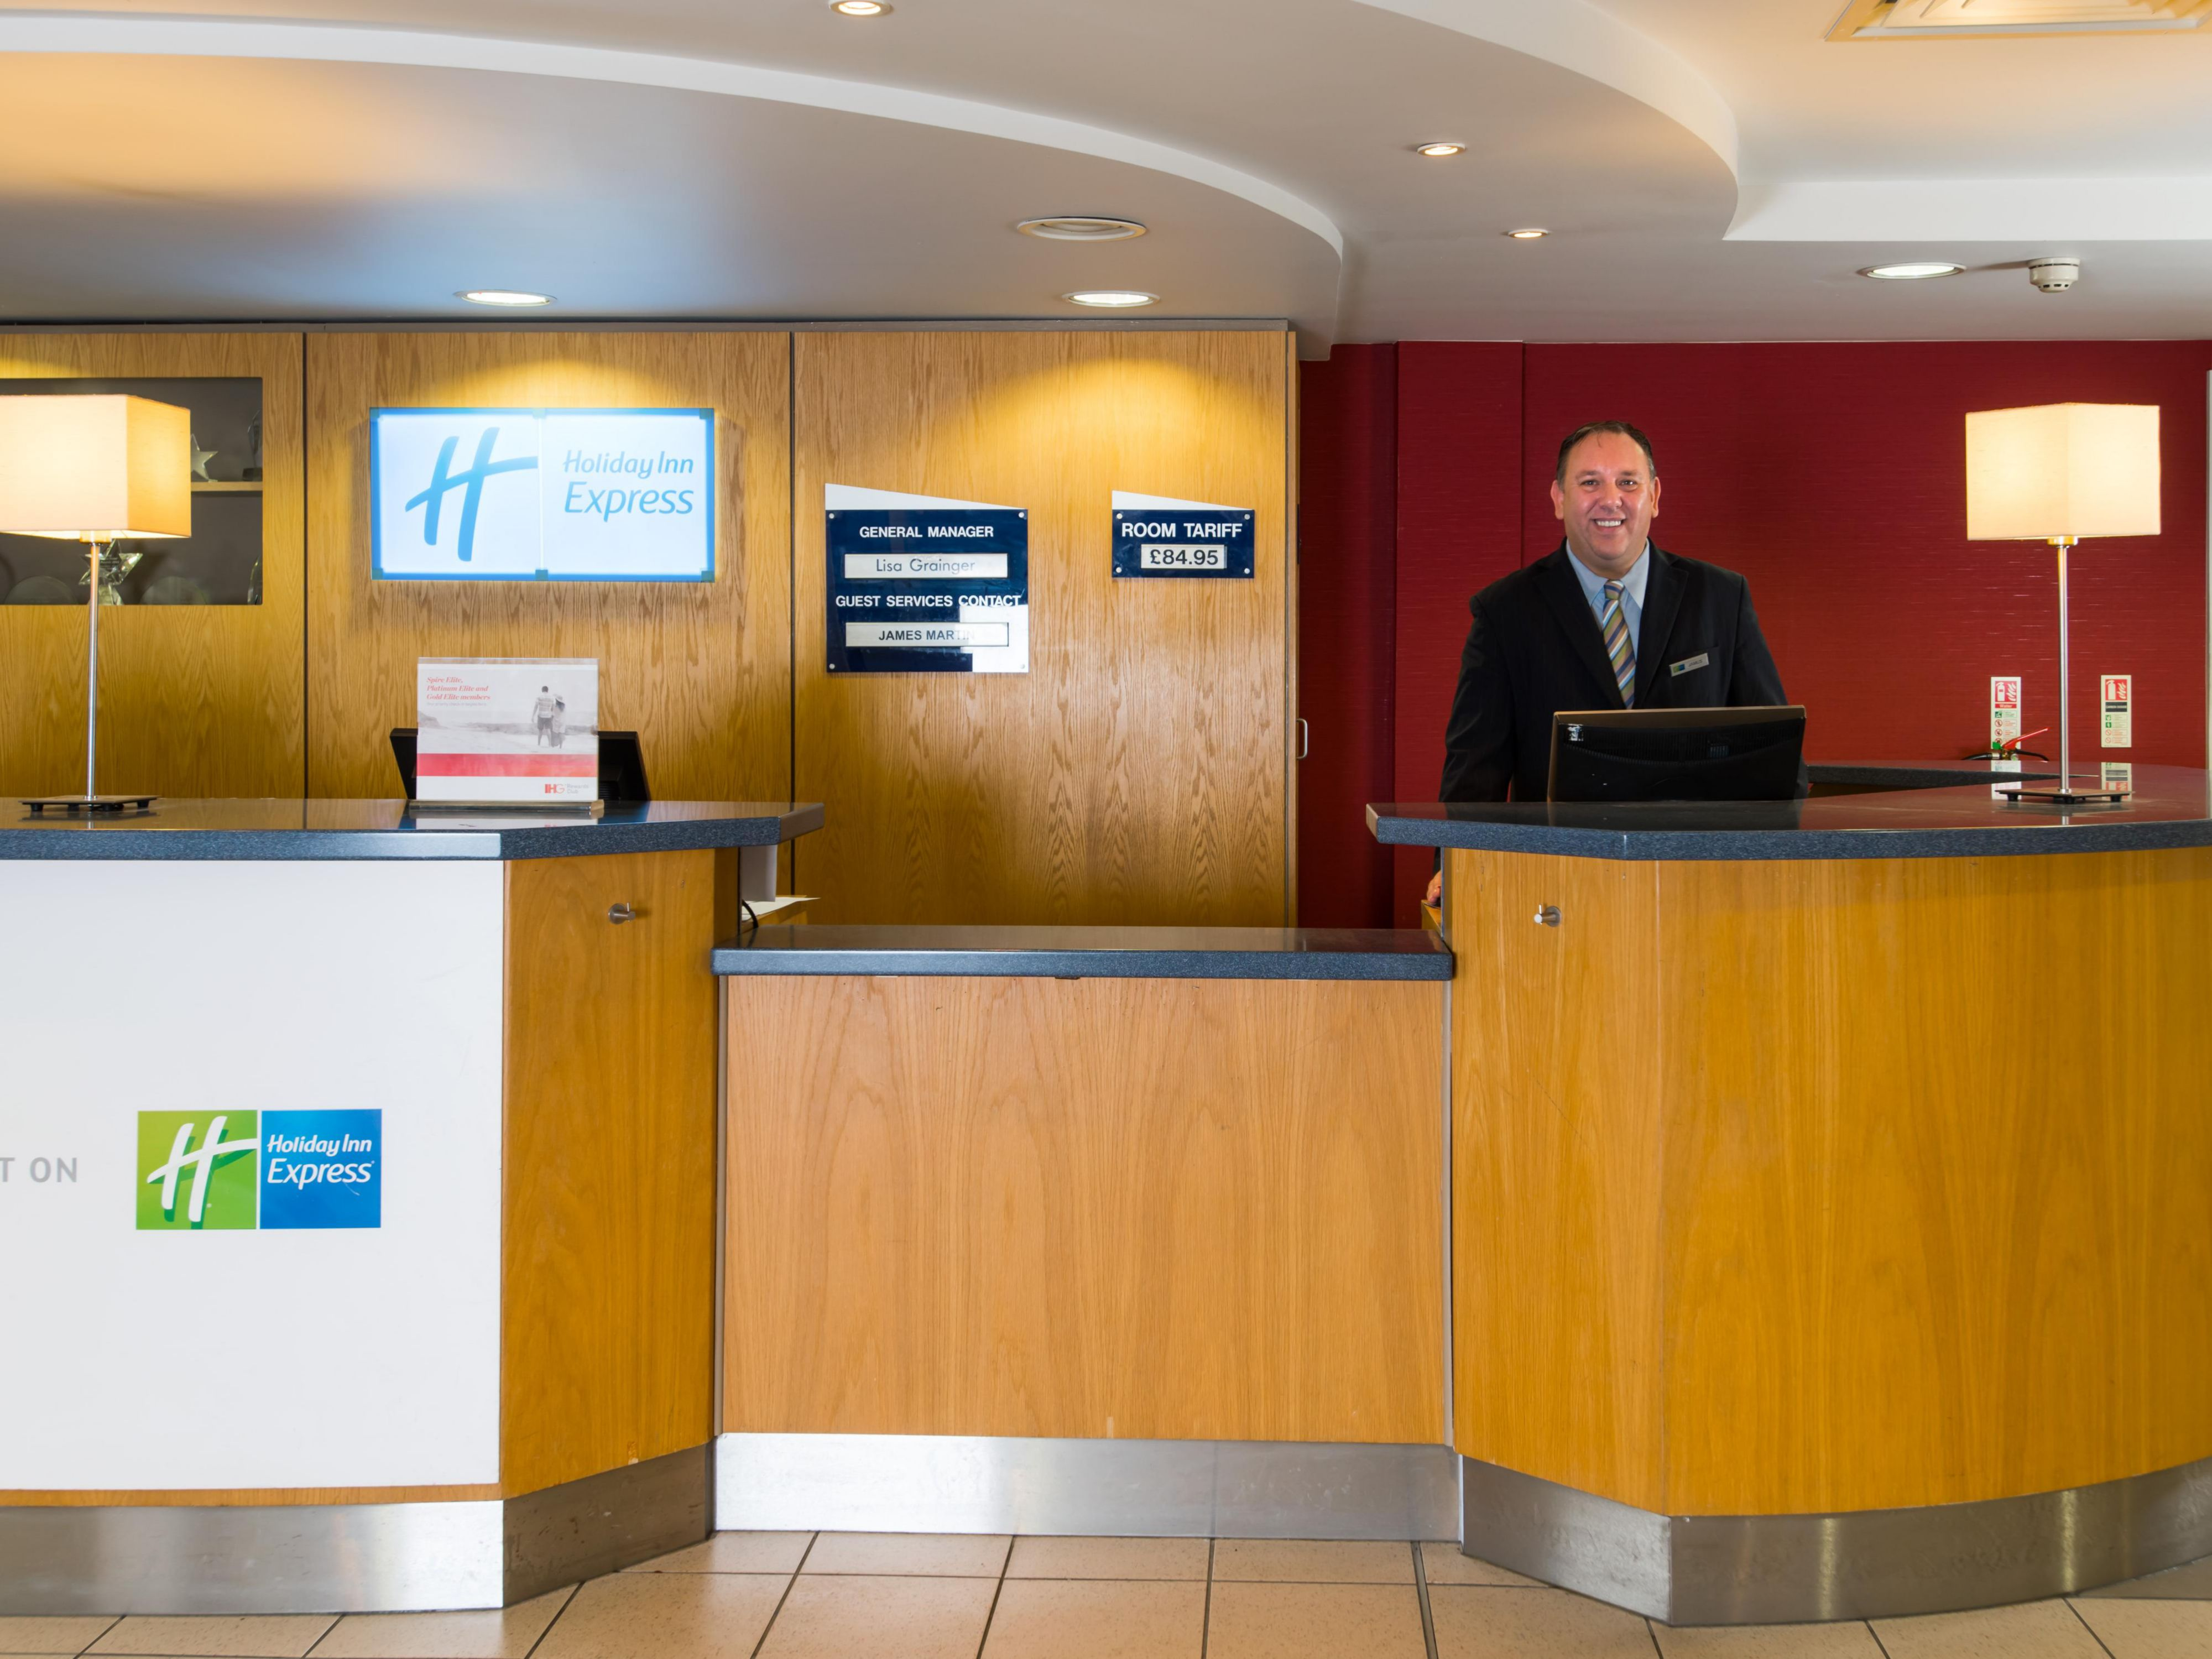 Our friendly Reception team are here to welcome you